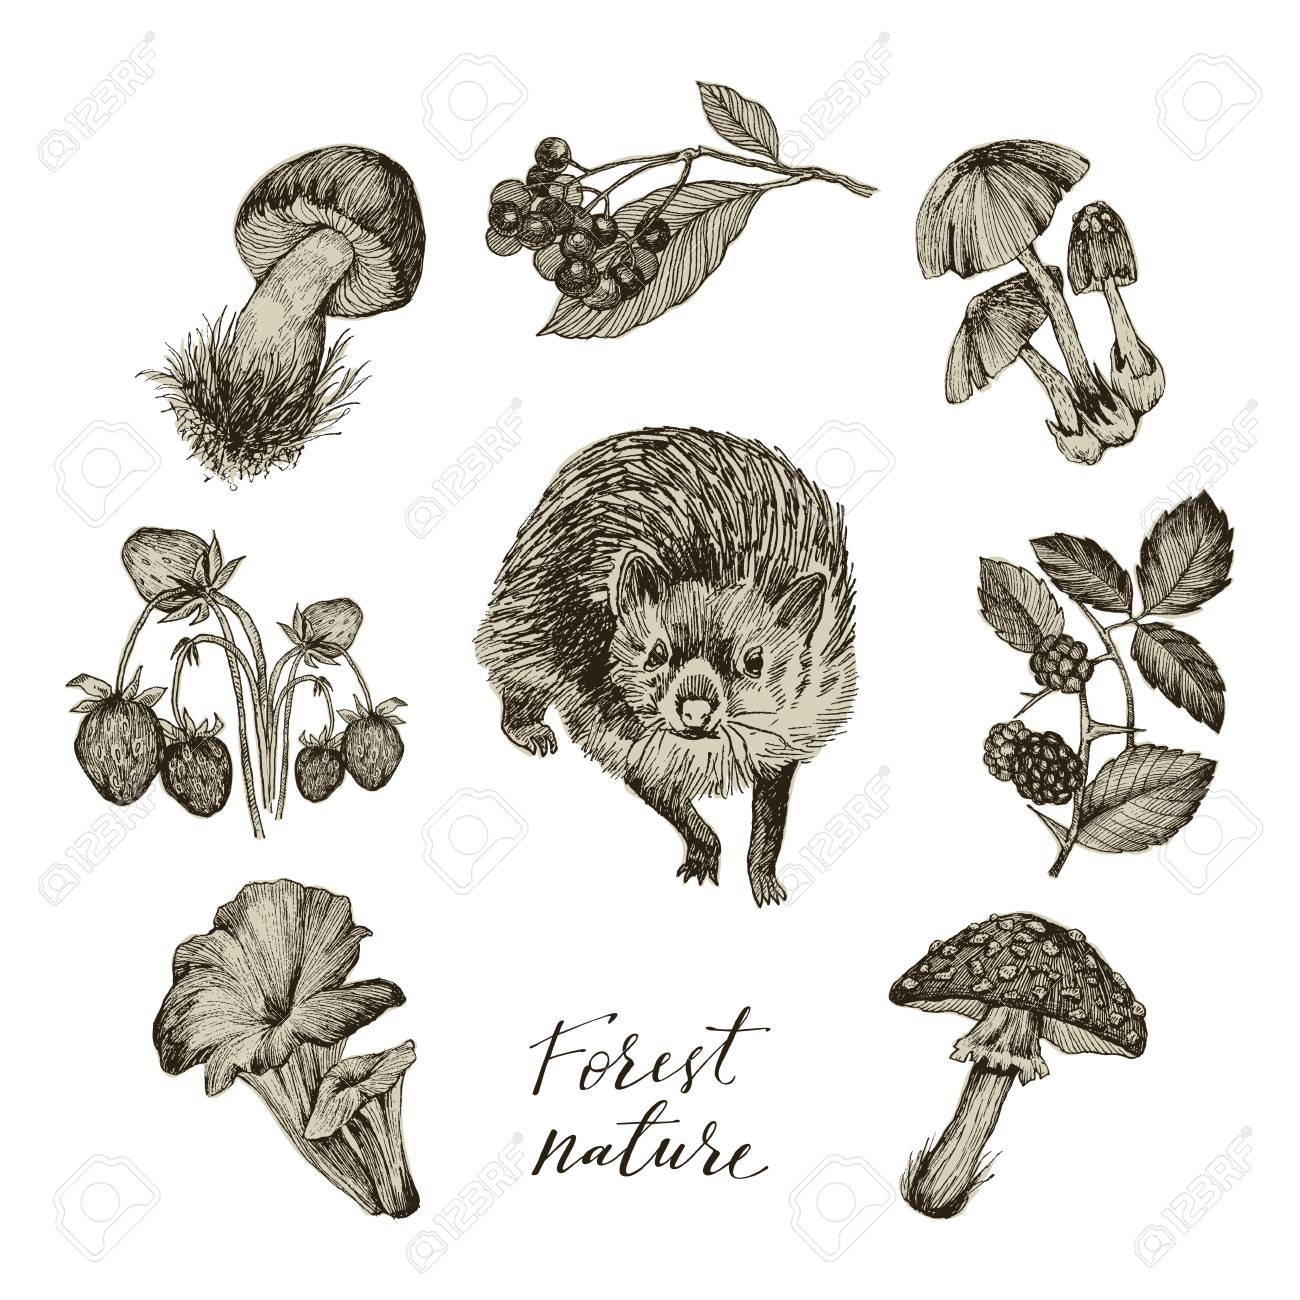 Set of forest nature objects. Plants and animals. Botanical illustration..